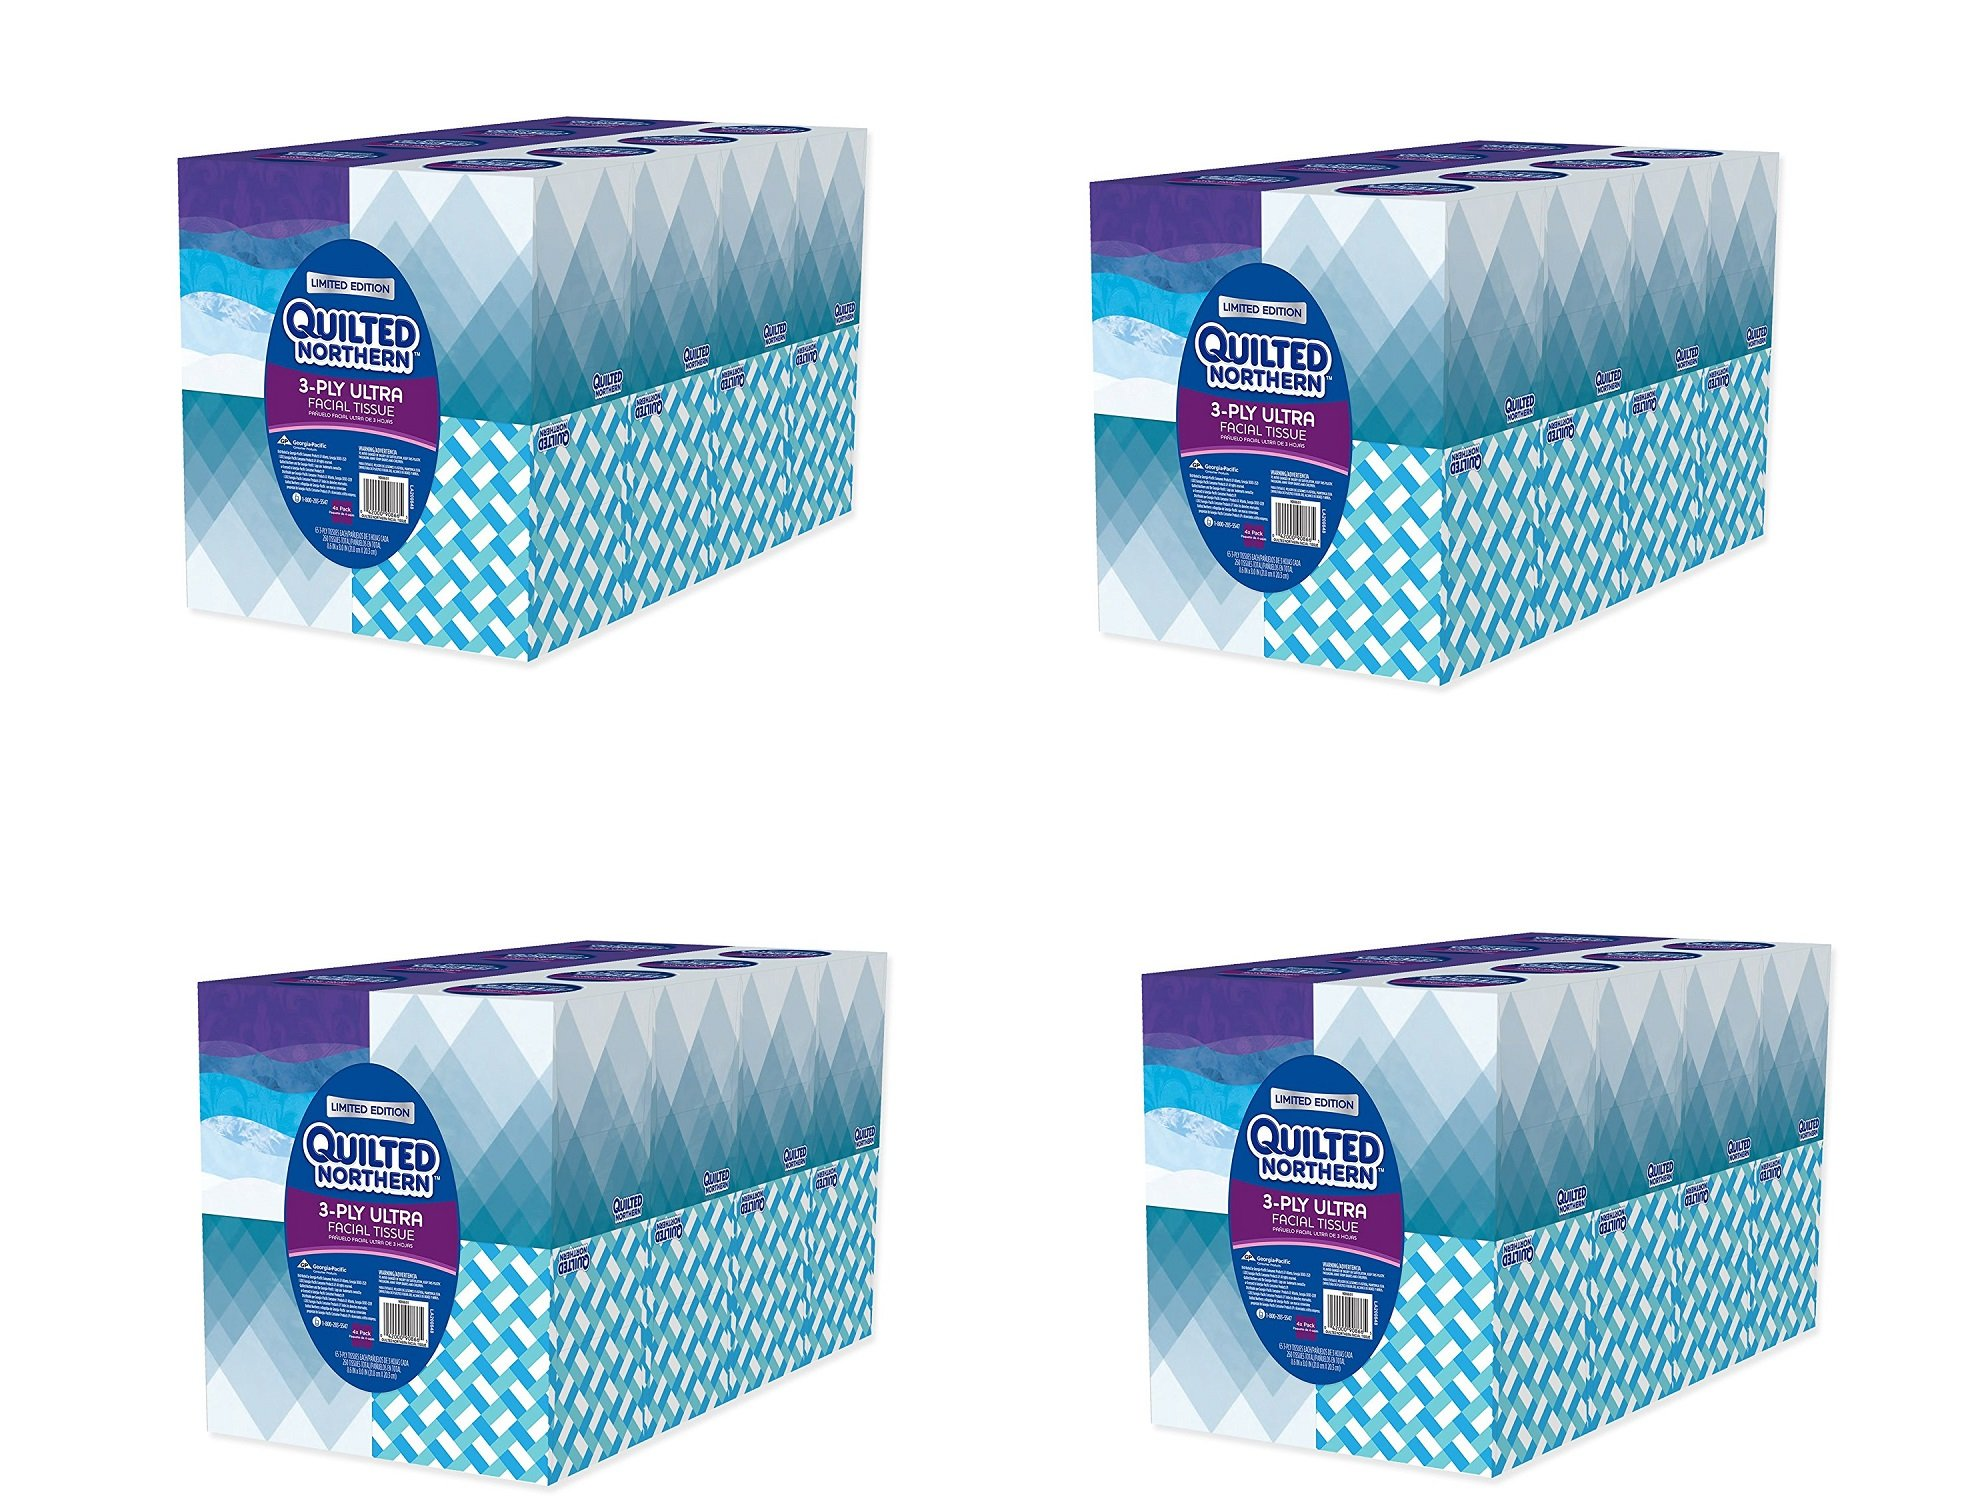 Quilted Northern Ultra hpJBbt Facial Tissue Cube, 16 Boxes (Pack of 4)